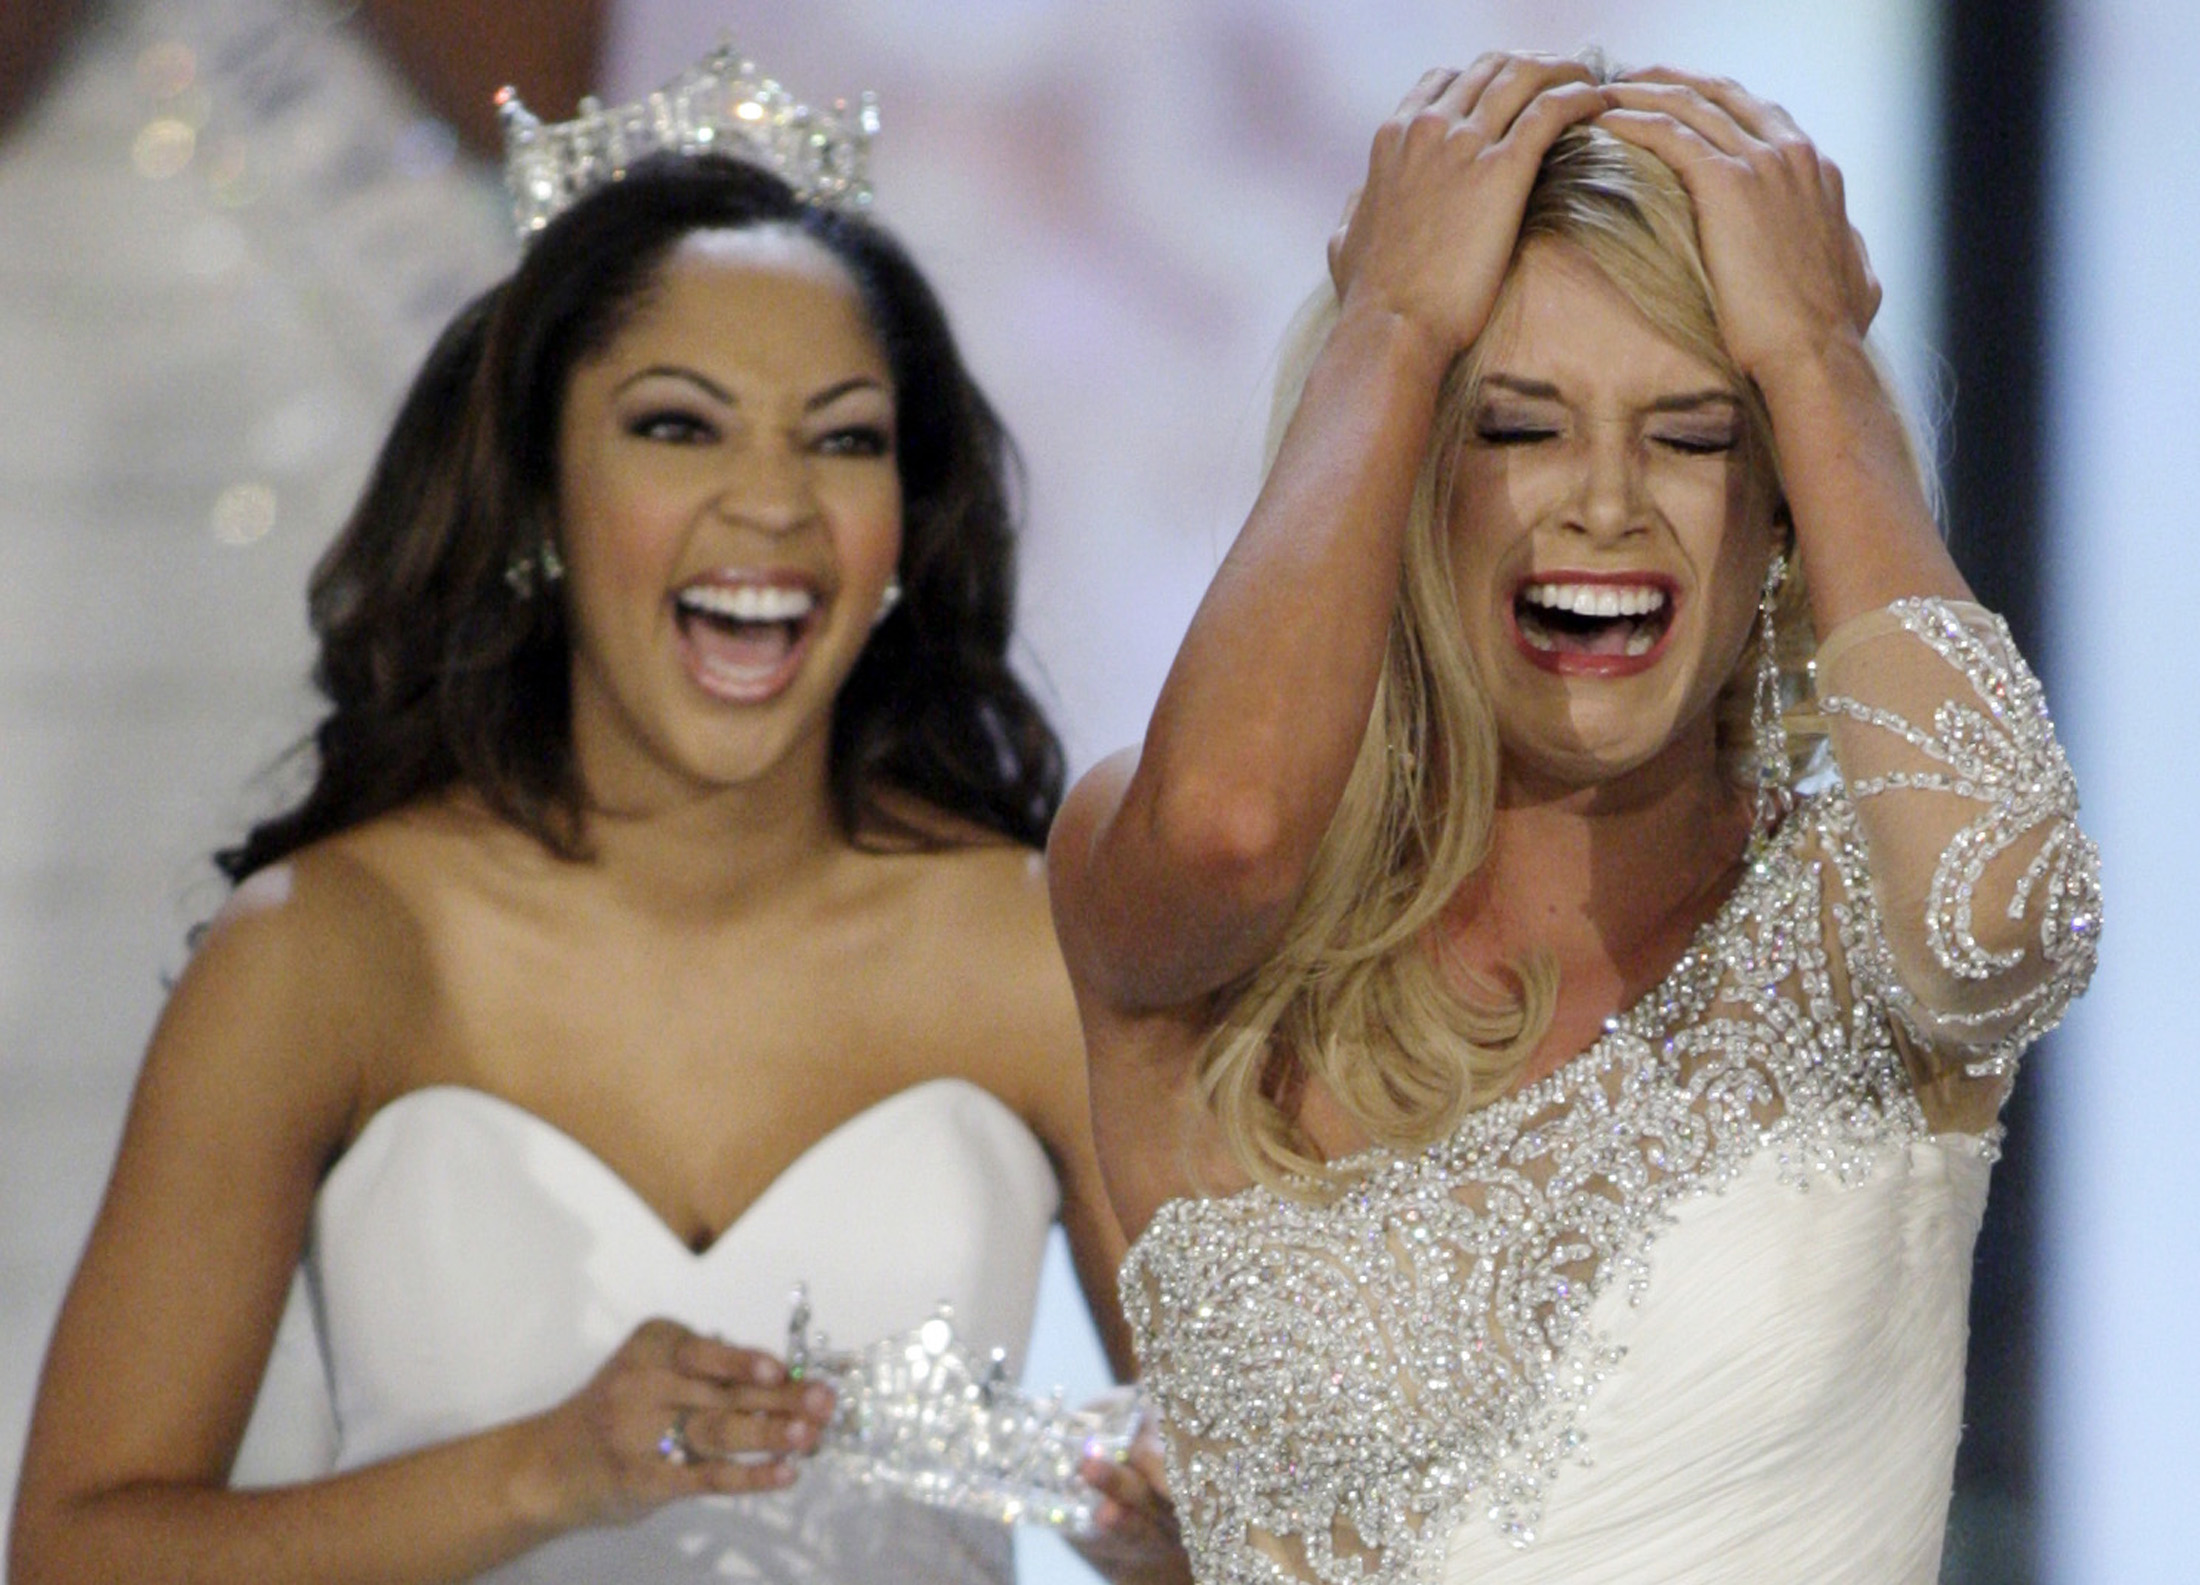 Miss Nebraska Teresa Scanlan (R), 17, reacts after being announced Miss America 2011 during the Miss America Pageant in Las Vegas, Nevada on Jan. 15, 2011.